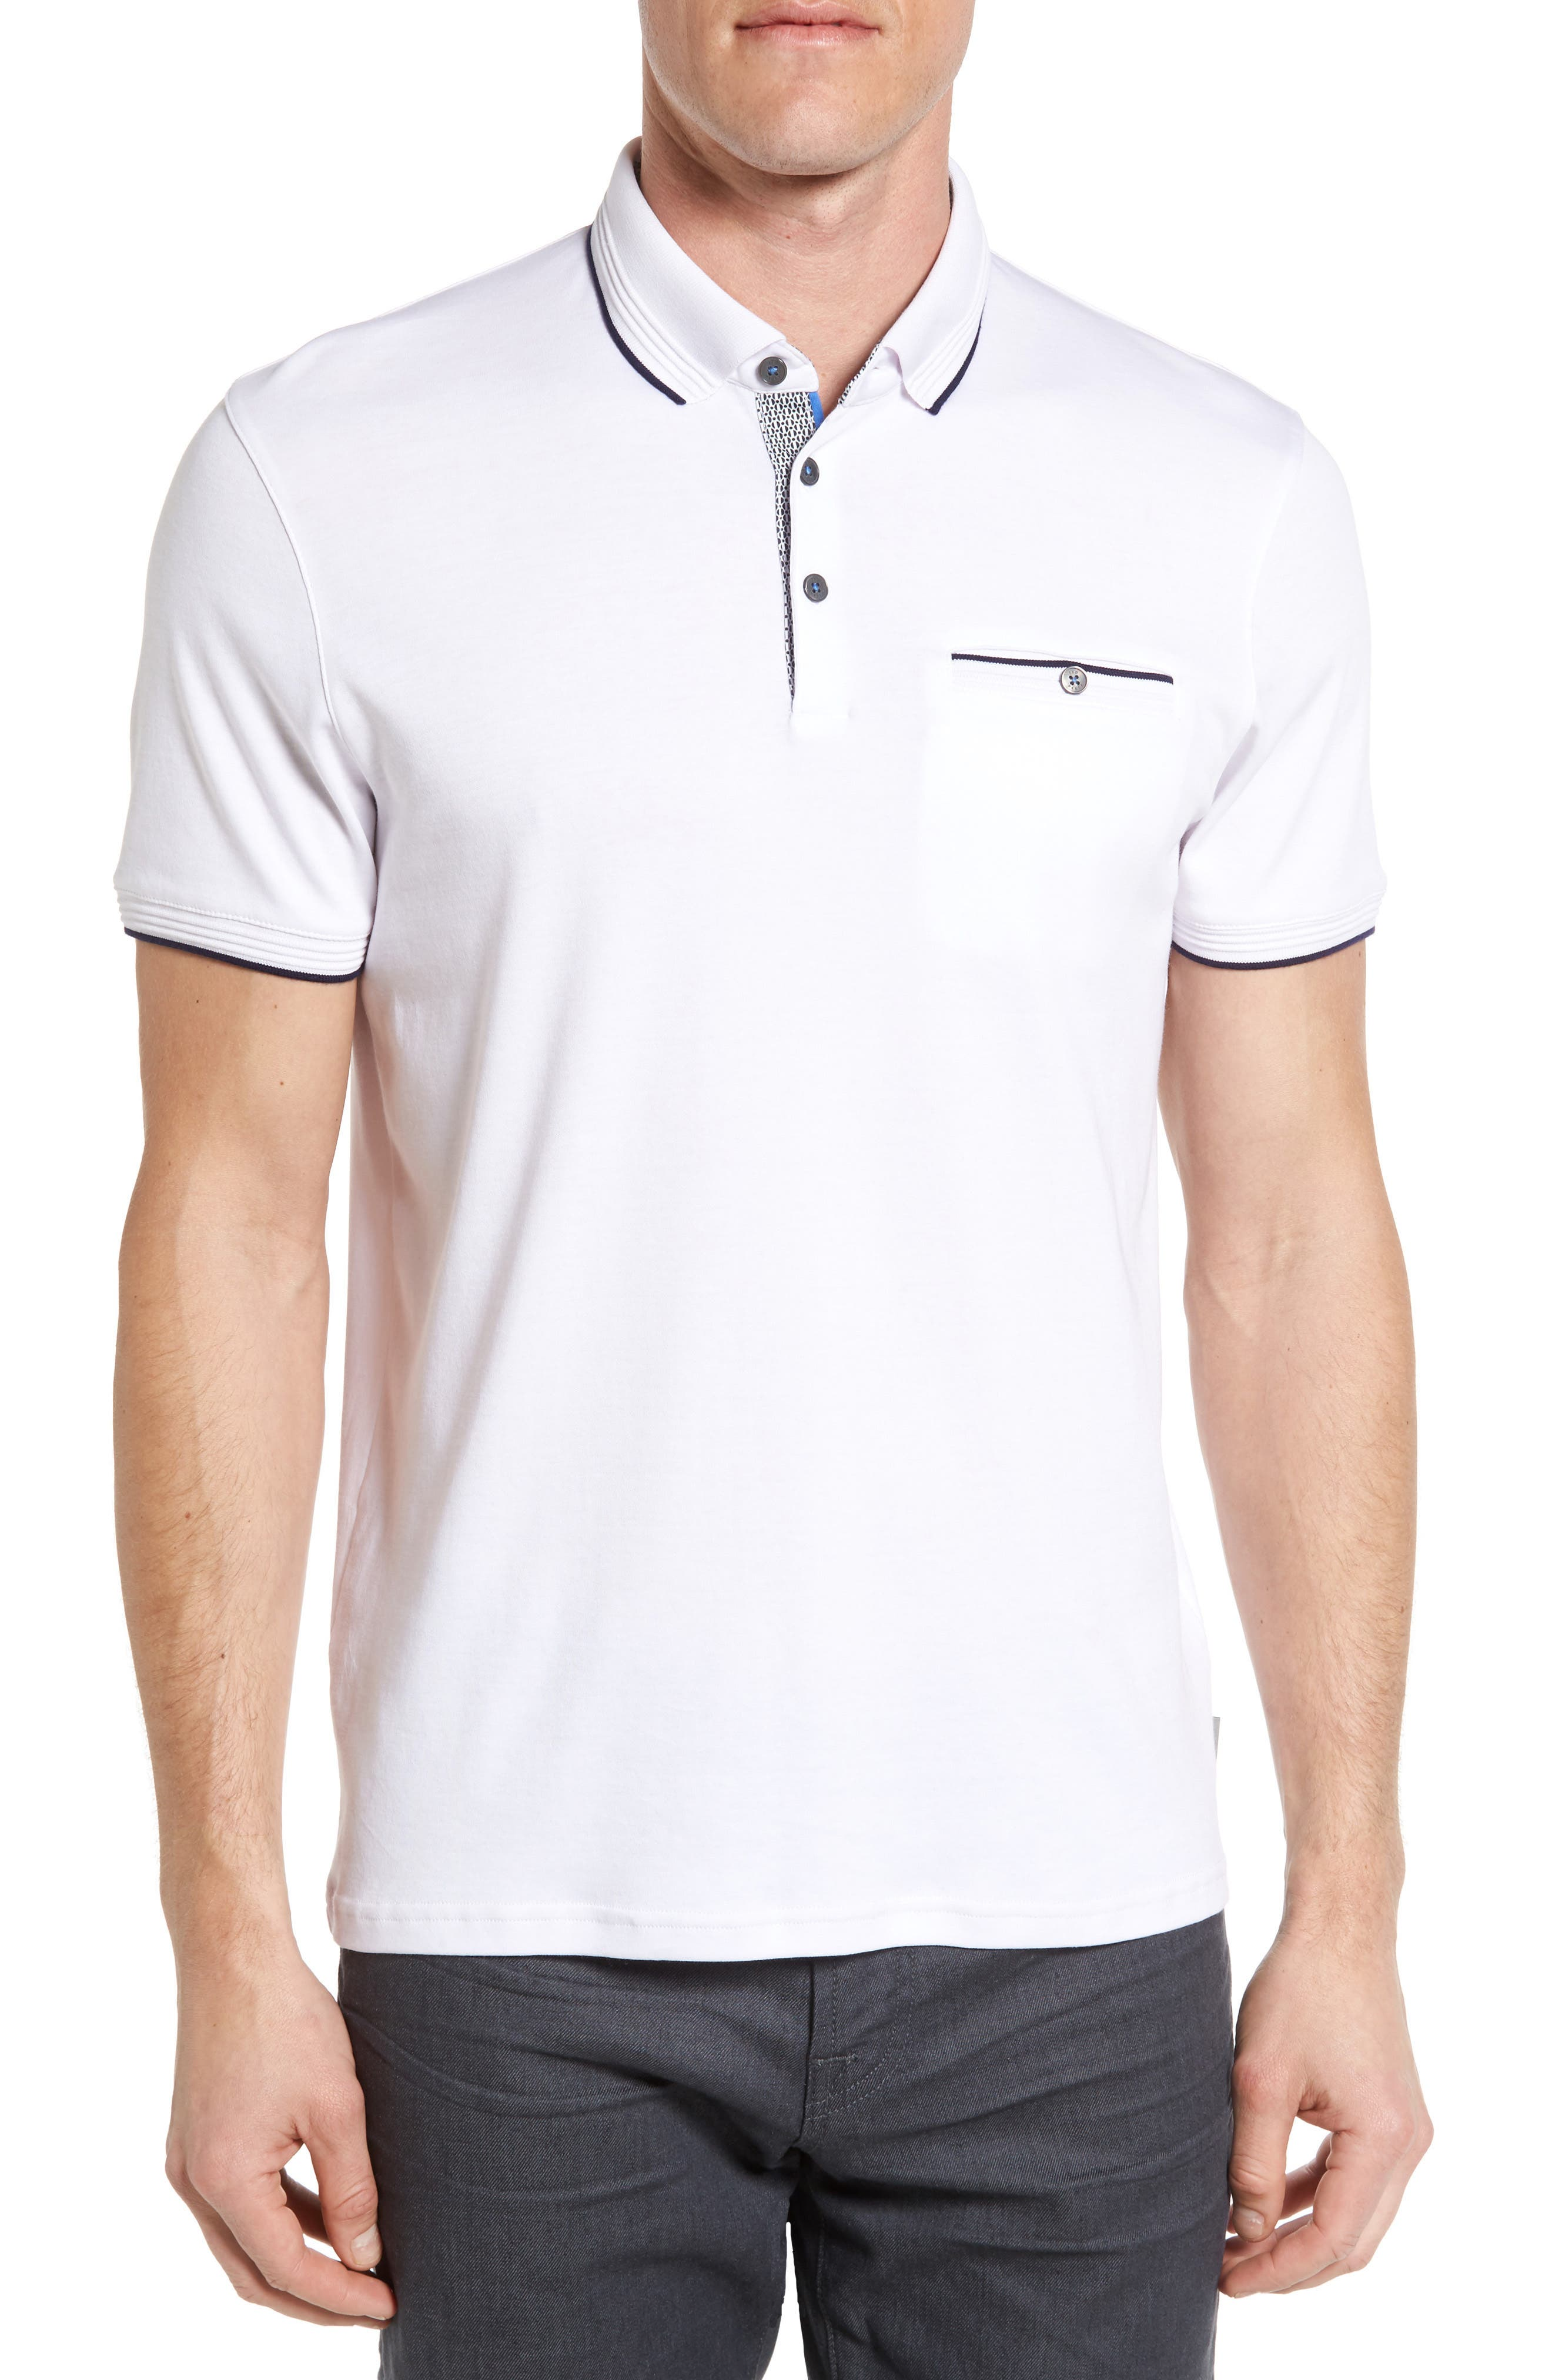 TED BAKER LONDON Derry Modern Slim Fit Polo, Main, color, WHITE